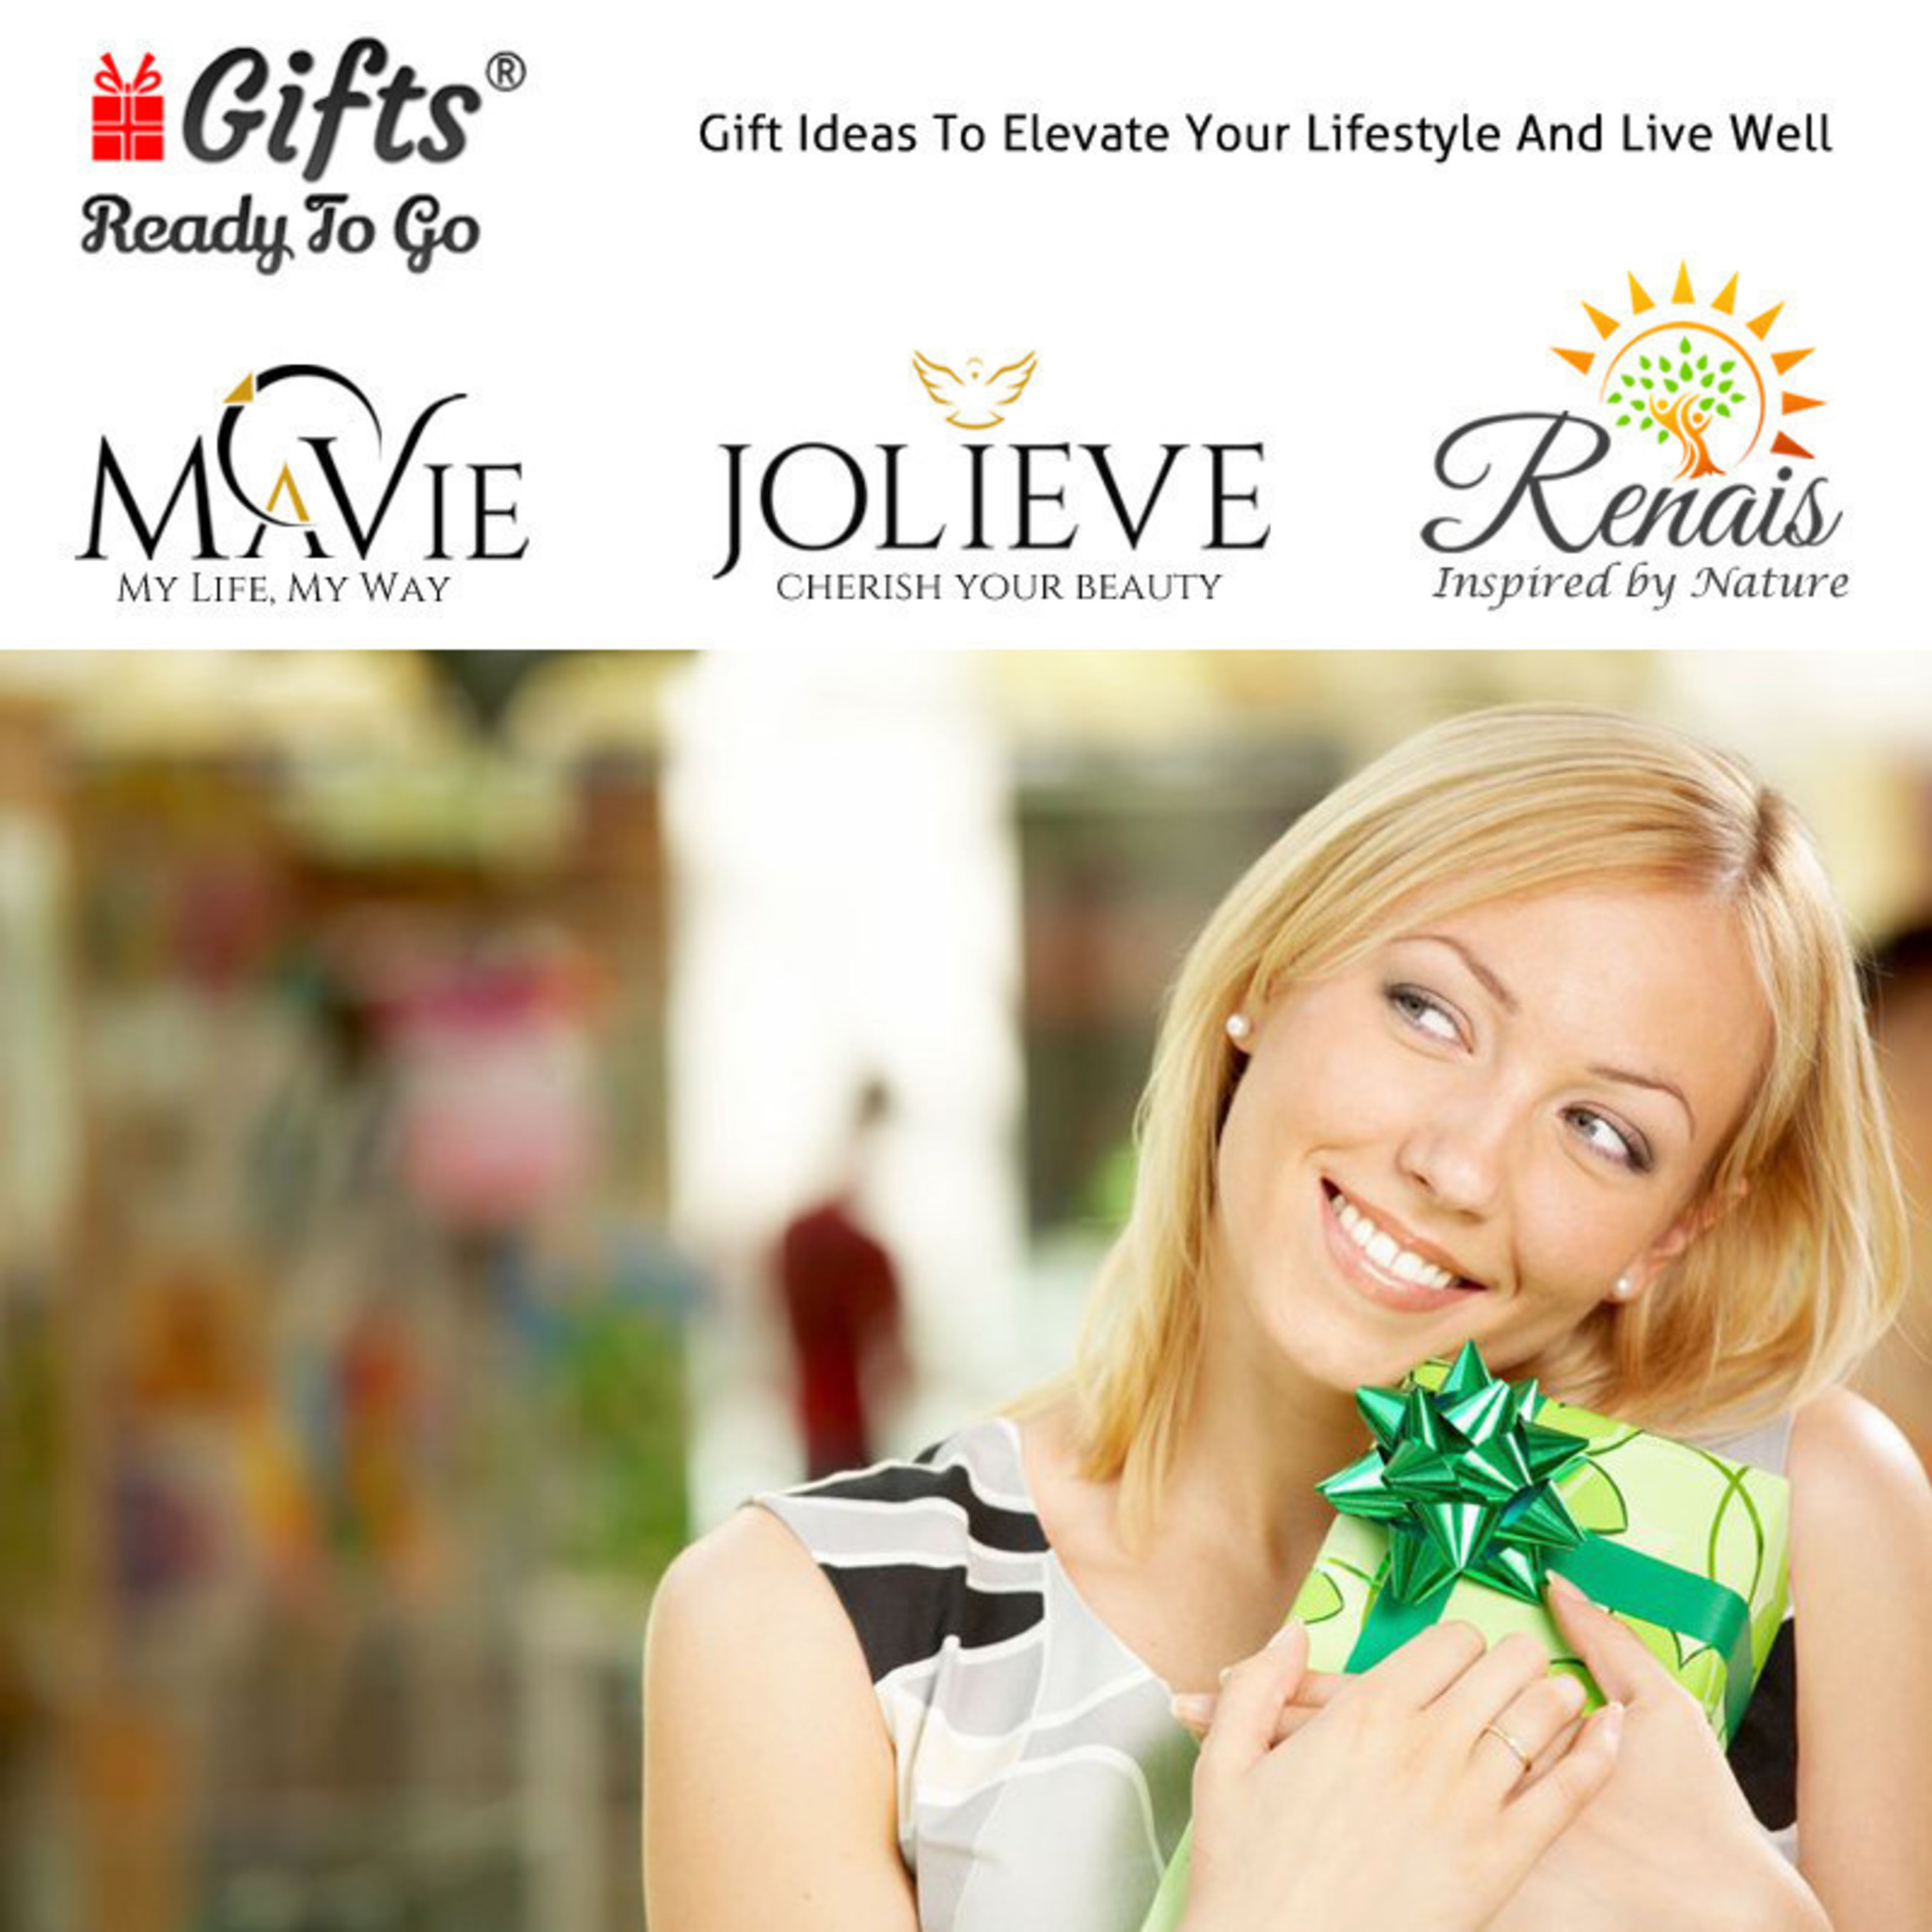 Gifts Ready to Go Brings a Fresh New Perspective to Gift Giving